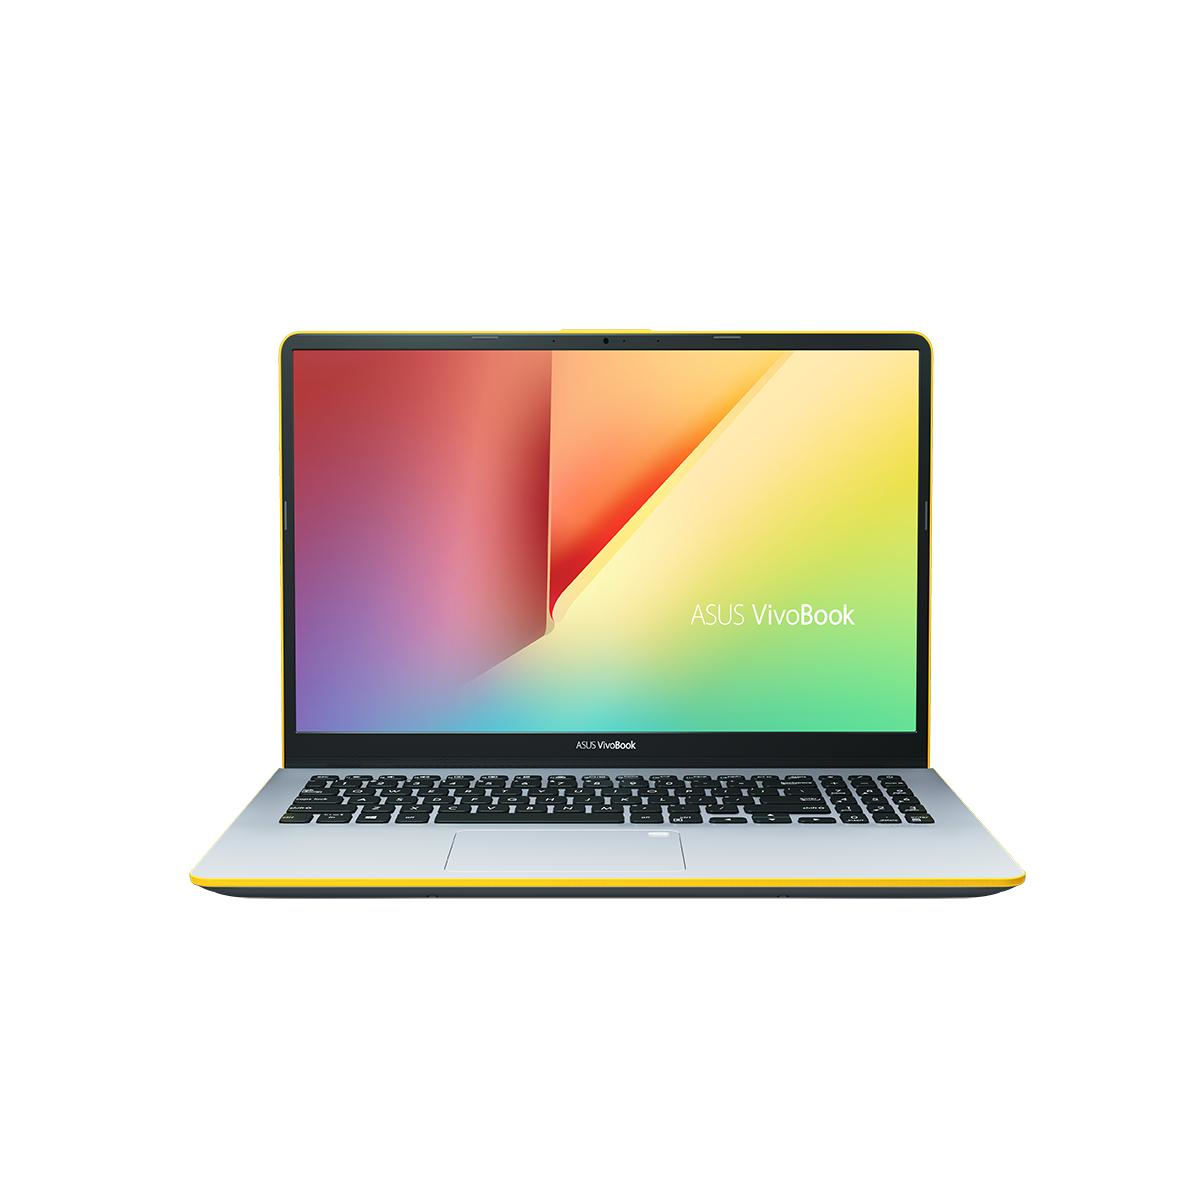 ASUS VivoBook S15 S530UA-BR221T notebook Grey,Yellow 39.6 cm (15.6